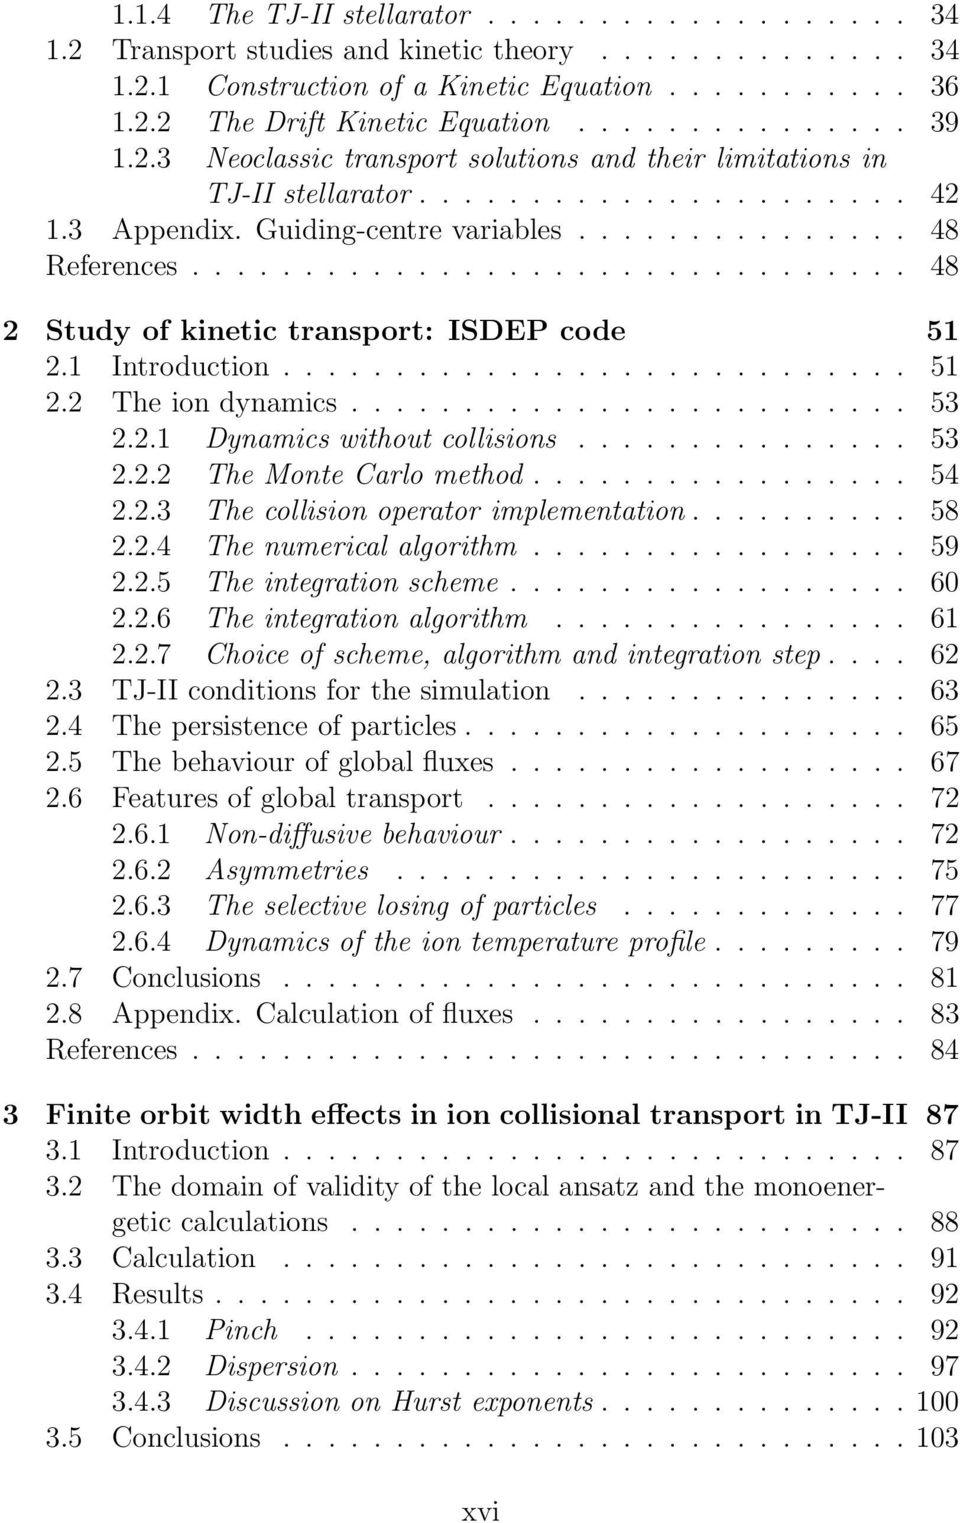 ............................... 48 2 Study of kinetic transport: ISDEP code 51 2.1 Introduction............................ 51 2.2 The ion dynamics......................... 53 2.2.1 Dynamics without collisions.